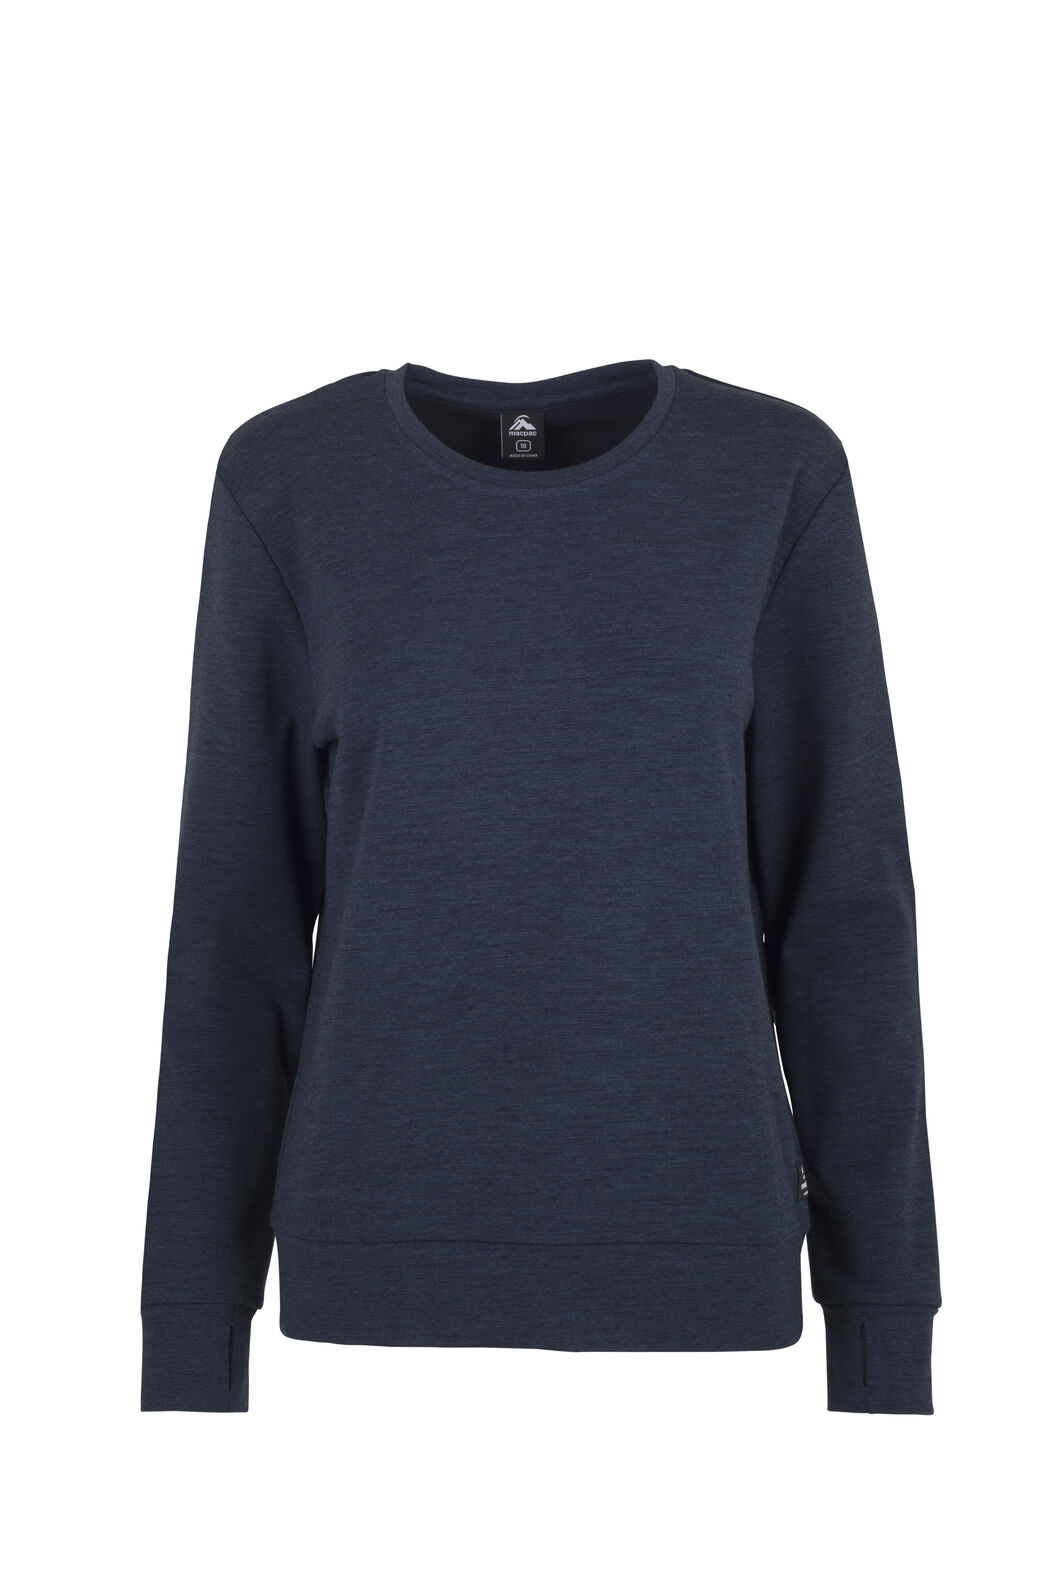 Macpac 280 Merino Long Sleeve Crew — Women's, Carbon Marle, hi-res